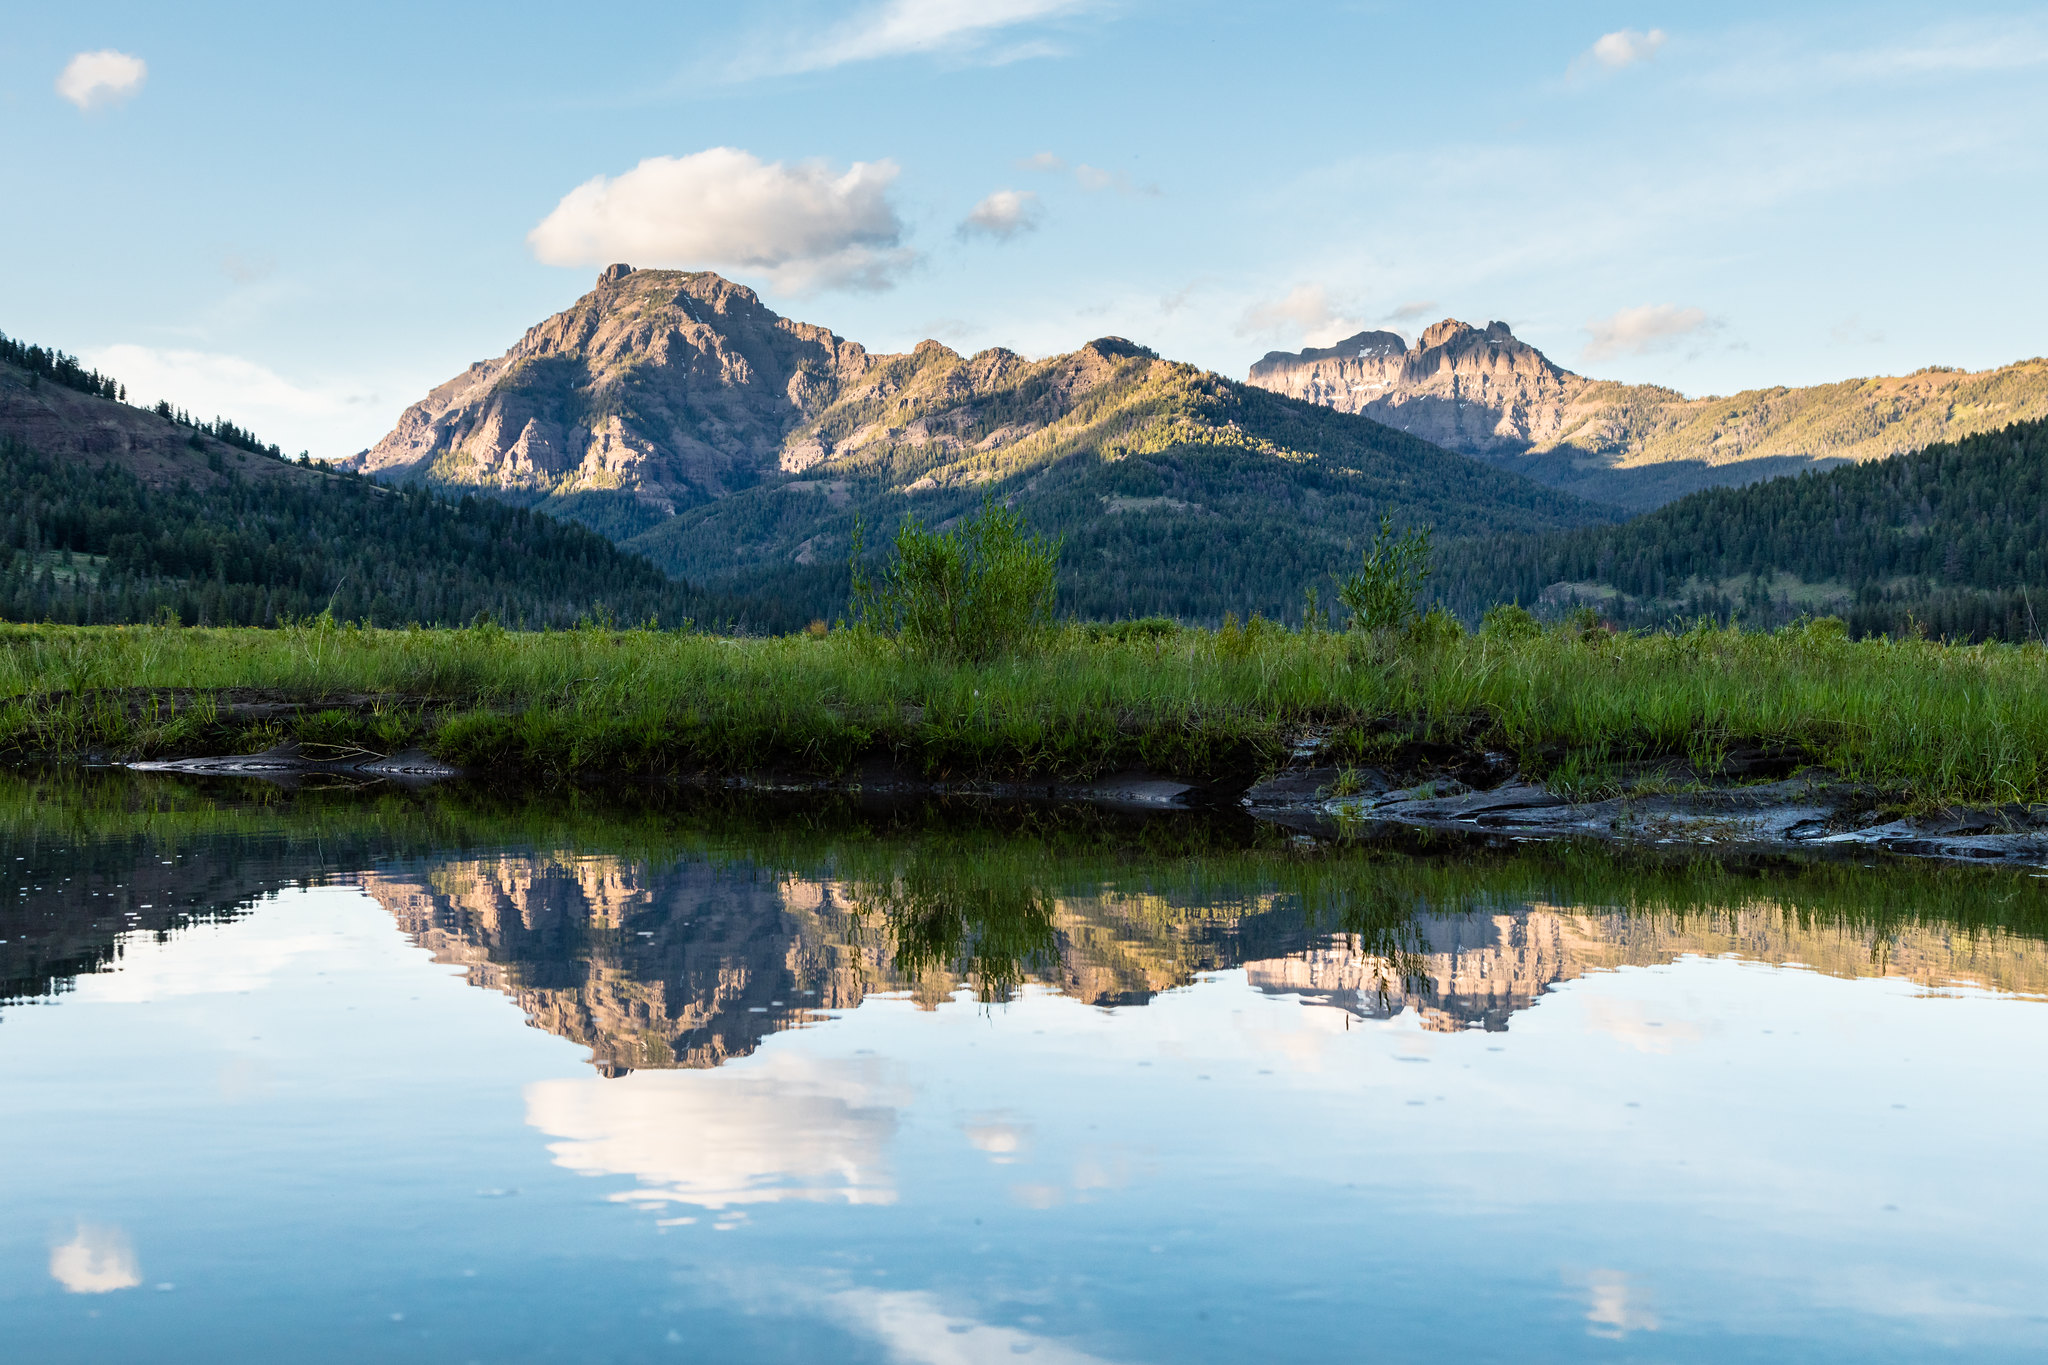 Mountains are reflected in the still waters of Soda Butte Creek at sunset